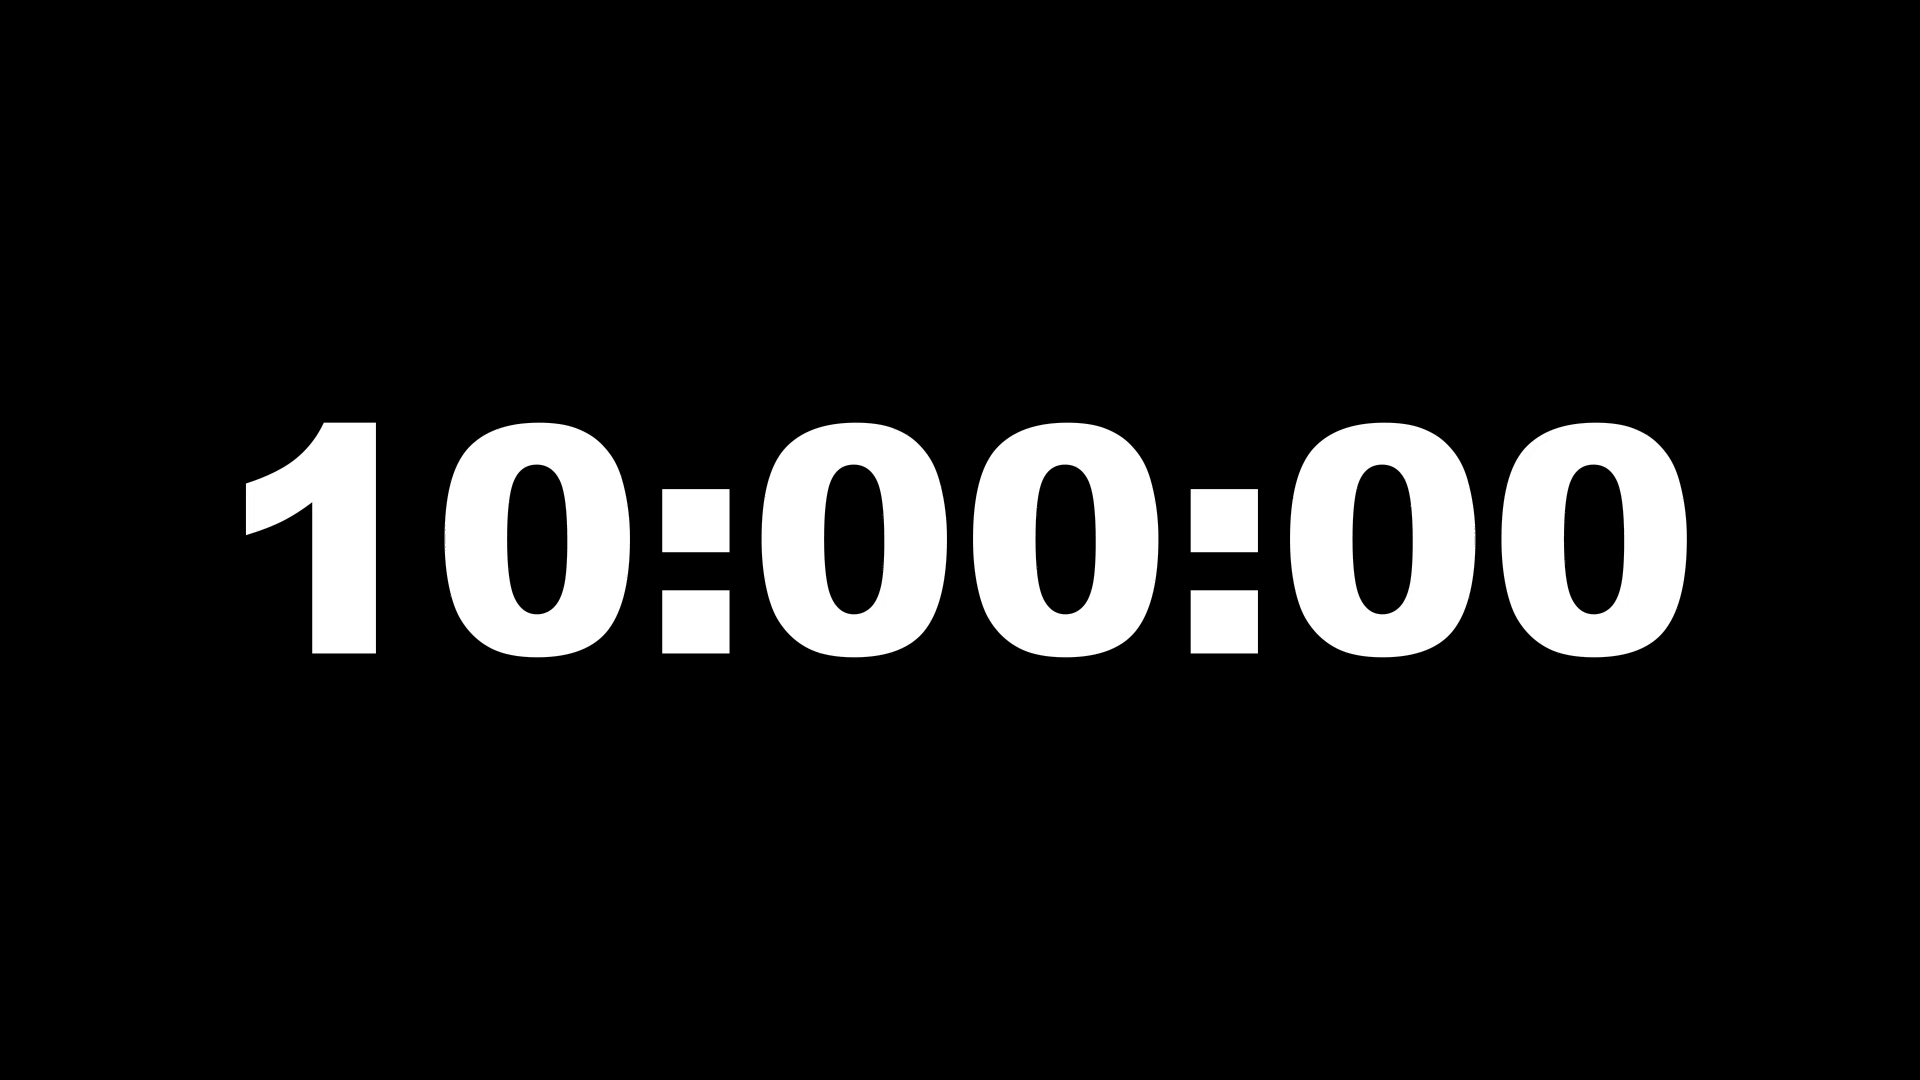 10 Minutes Countdown Timer Free Stock Footage Archive